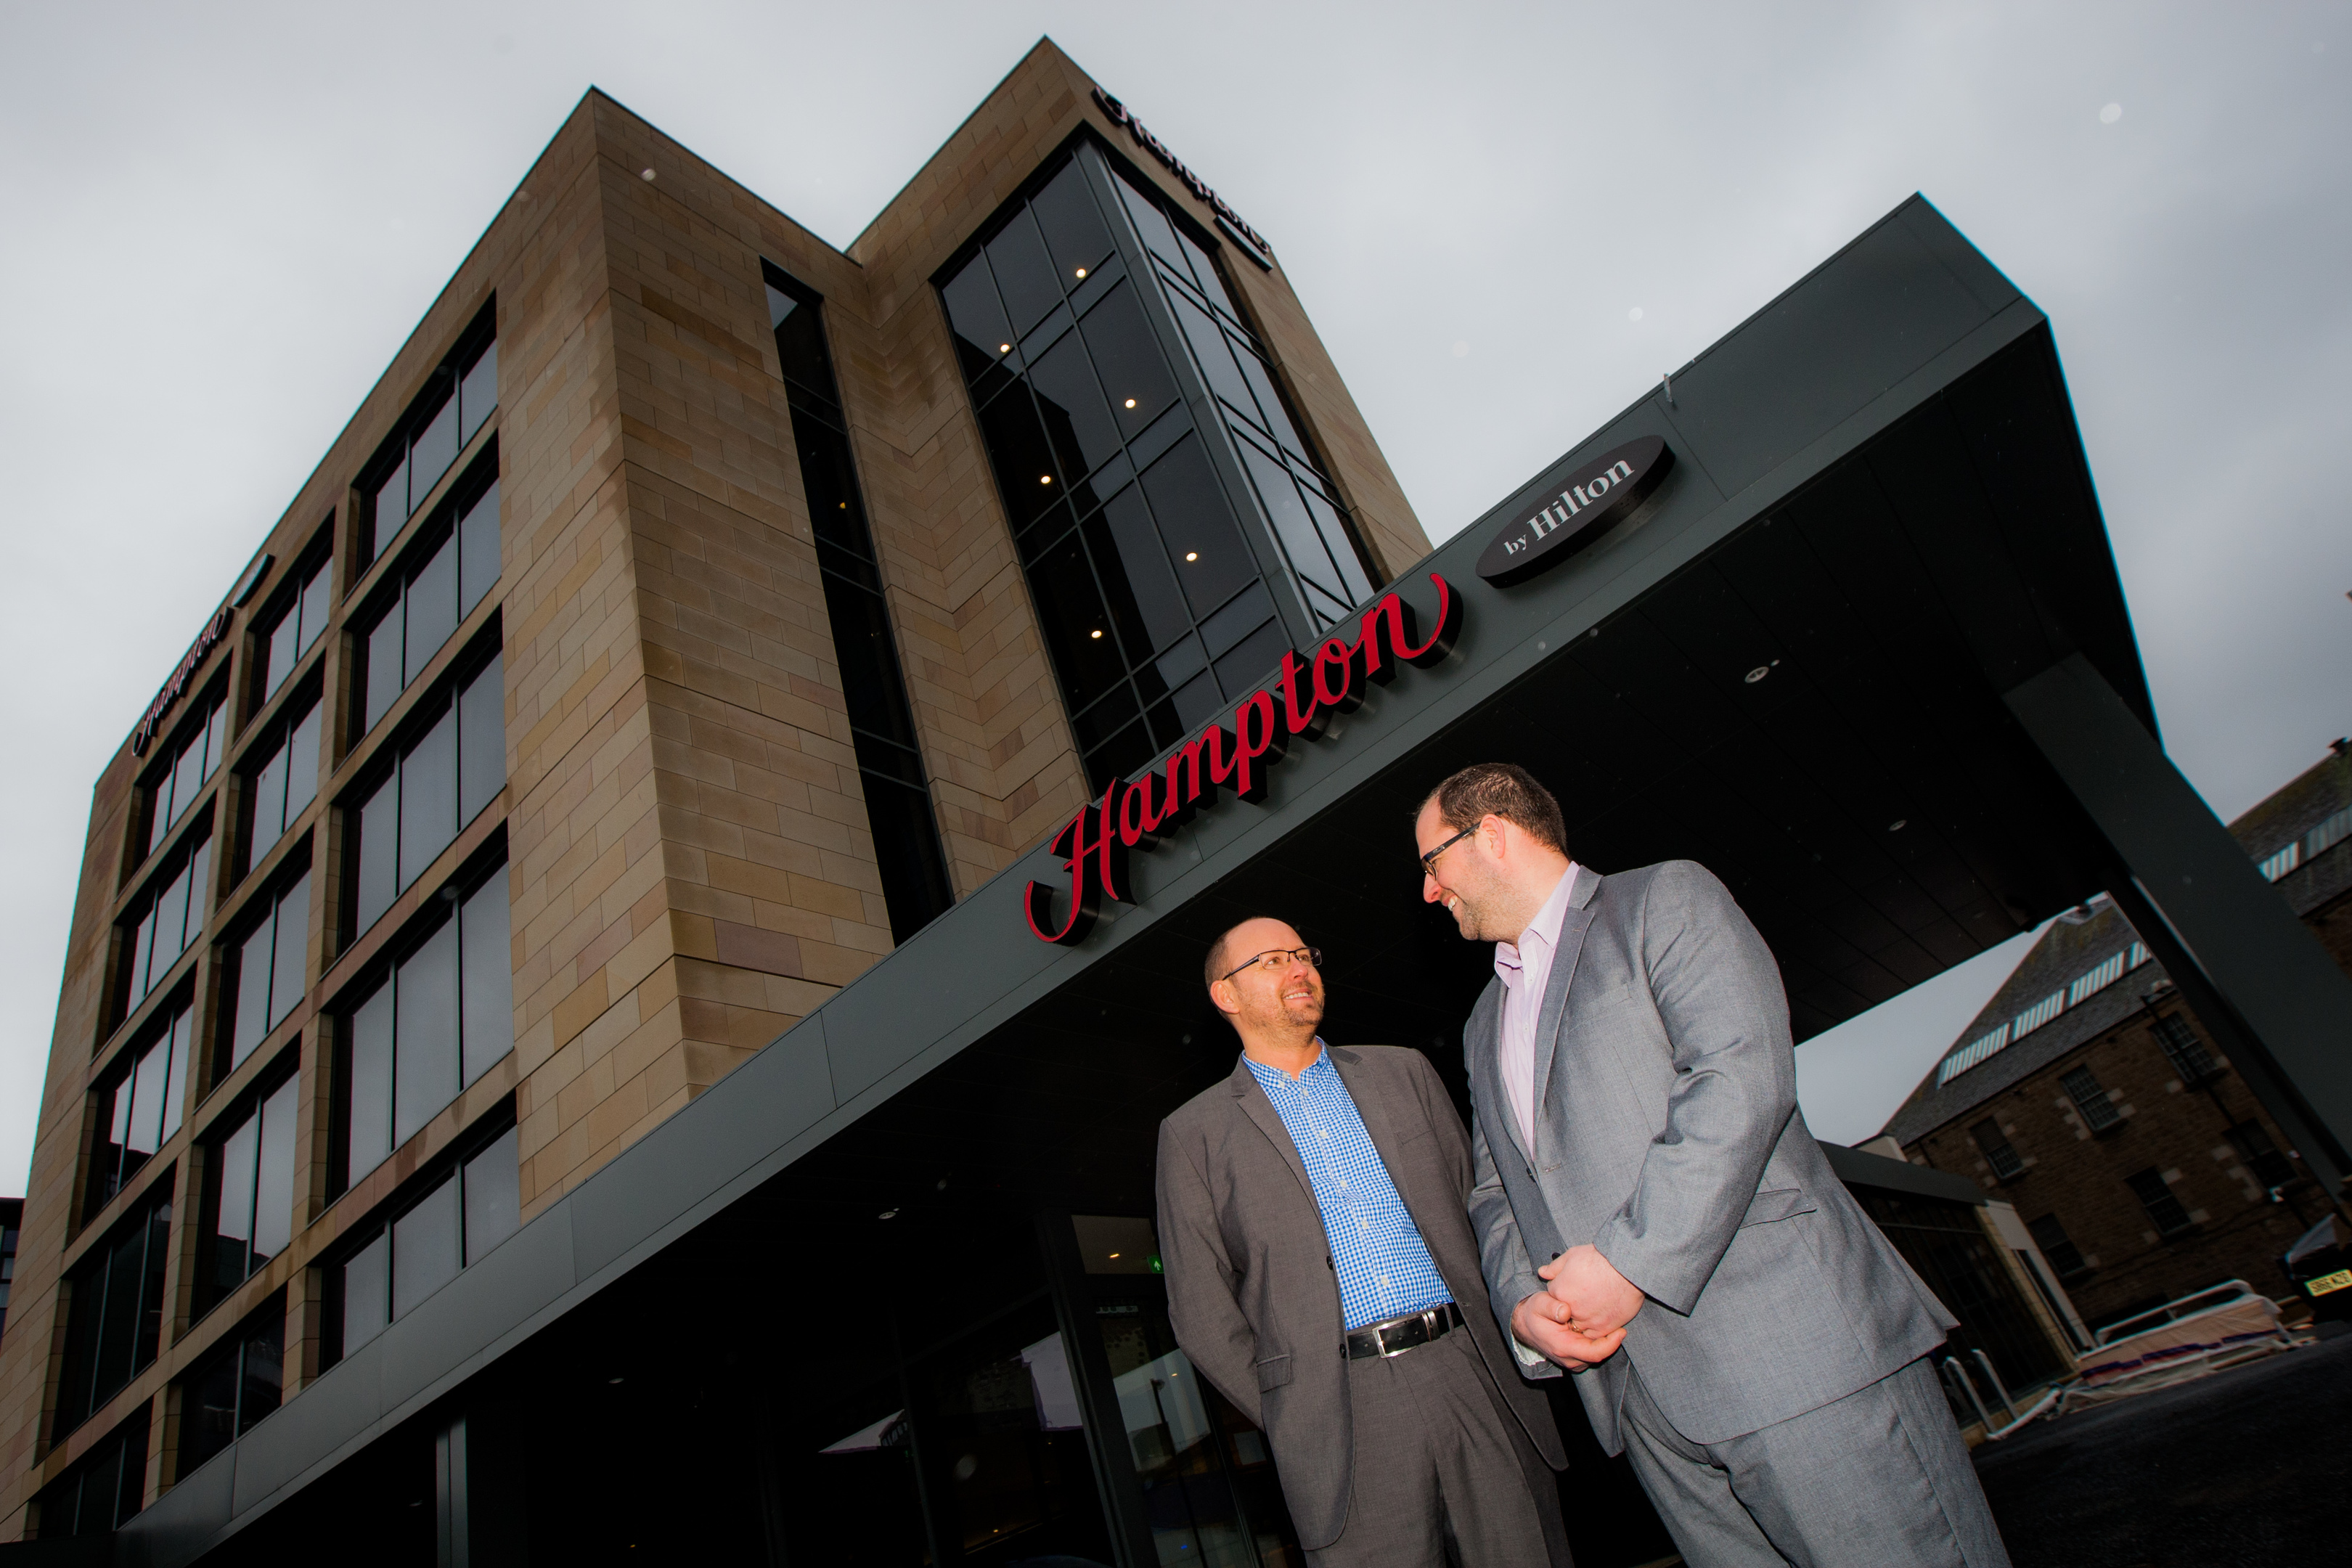 General manager Paul Wood and director of sales Derek Miller in front of the new Hampton by Hilton hotel.